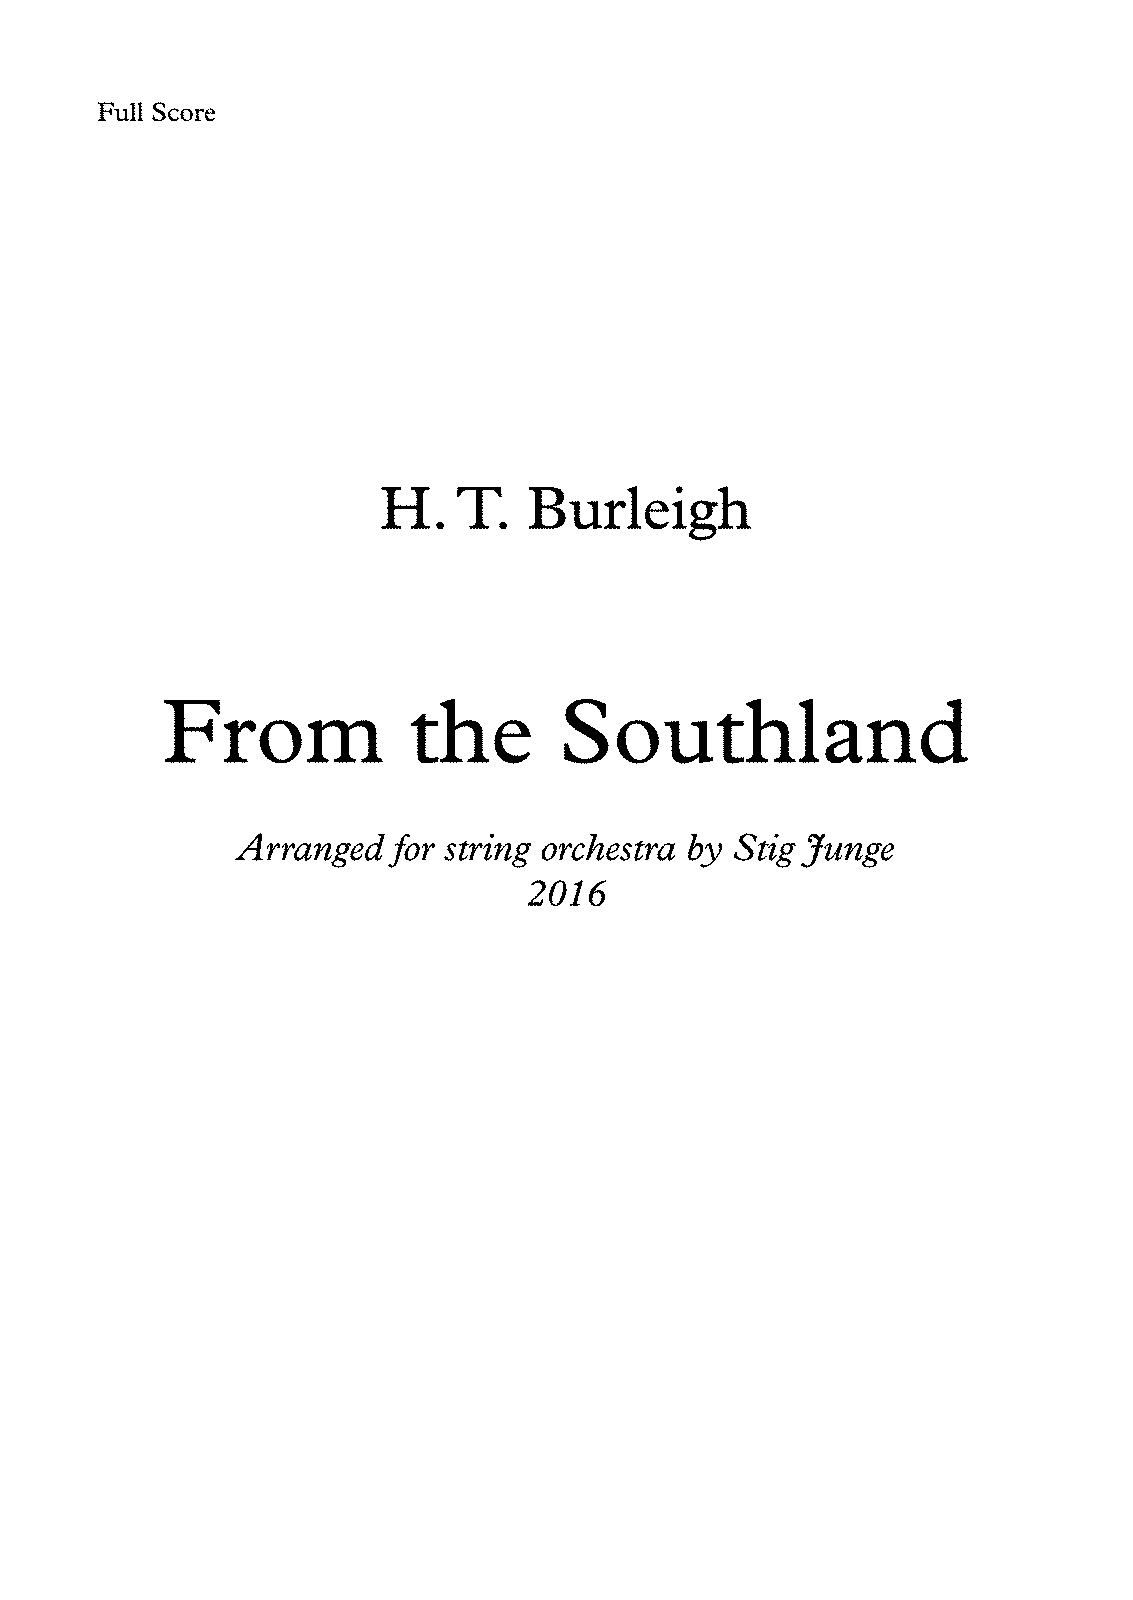 PMLP443541-Burleigh - From the Southland, arranged for string orchestra - Full Score.pdf